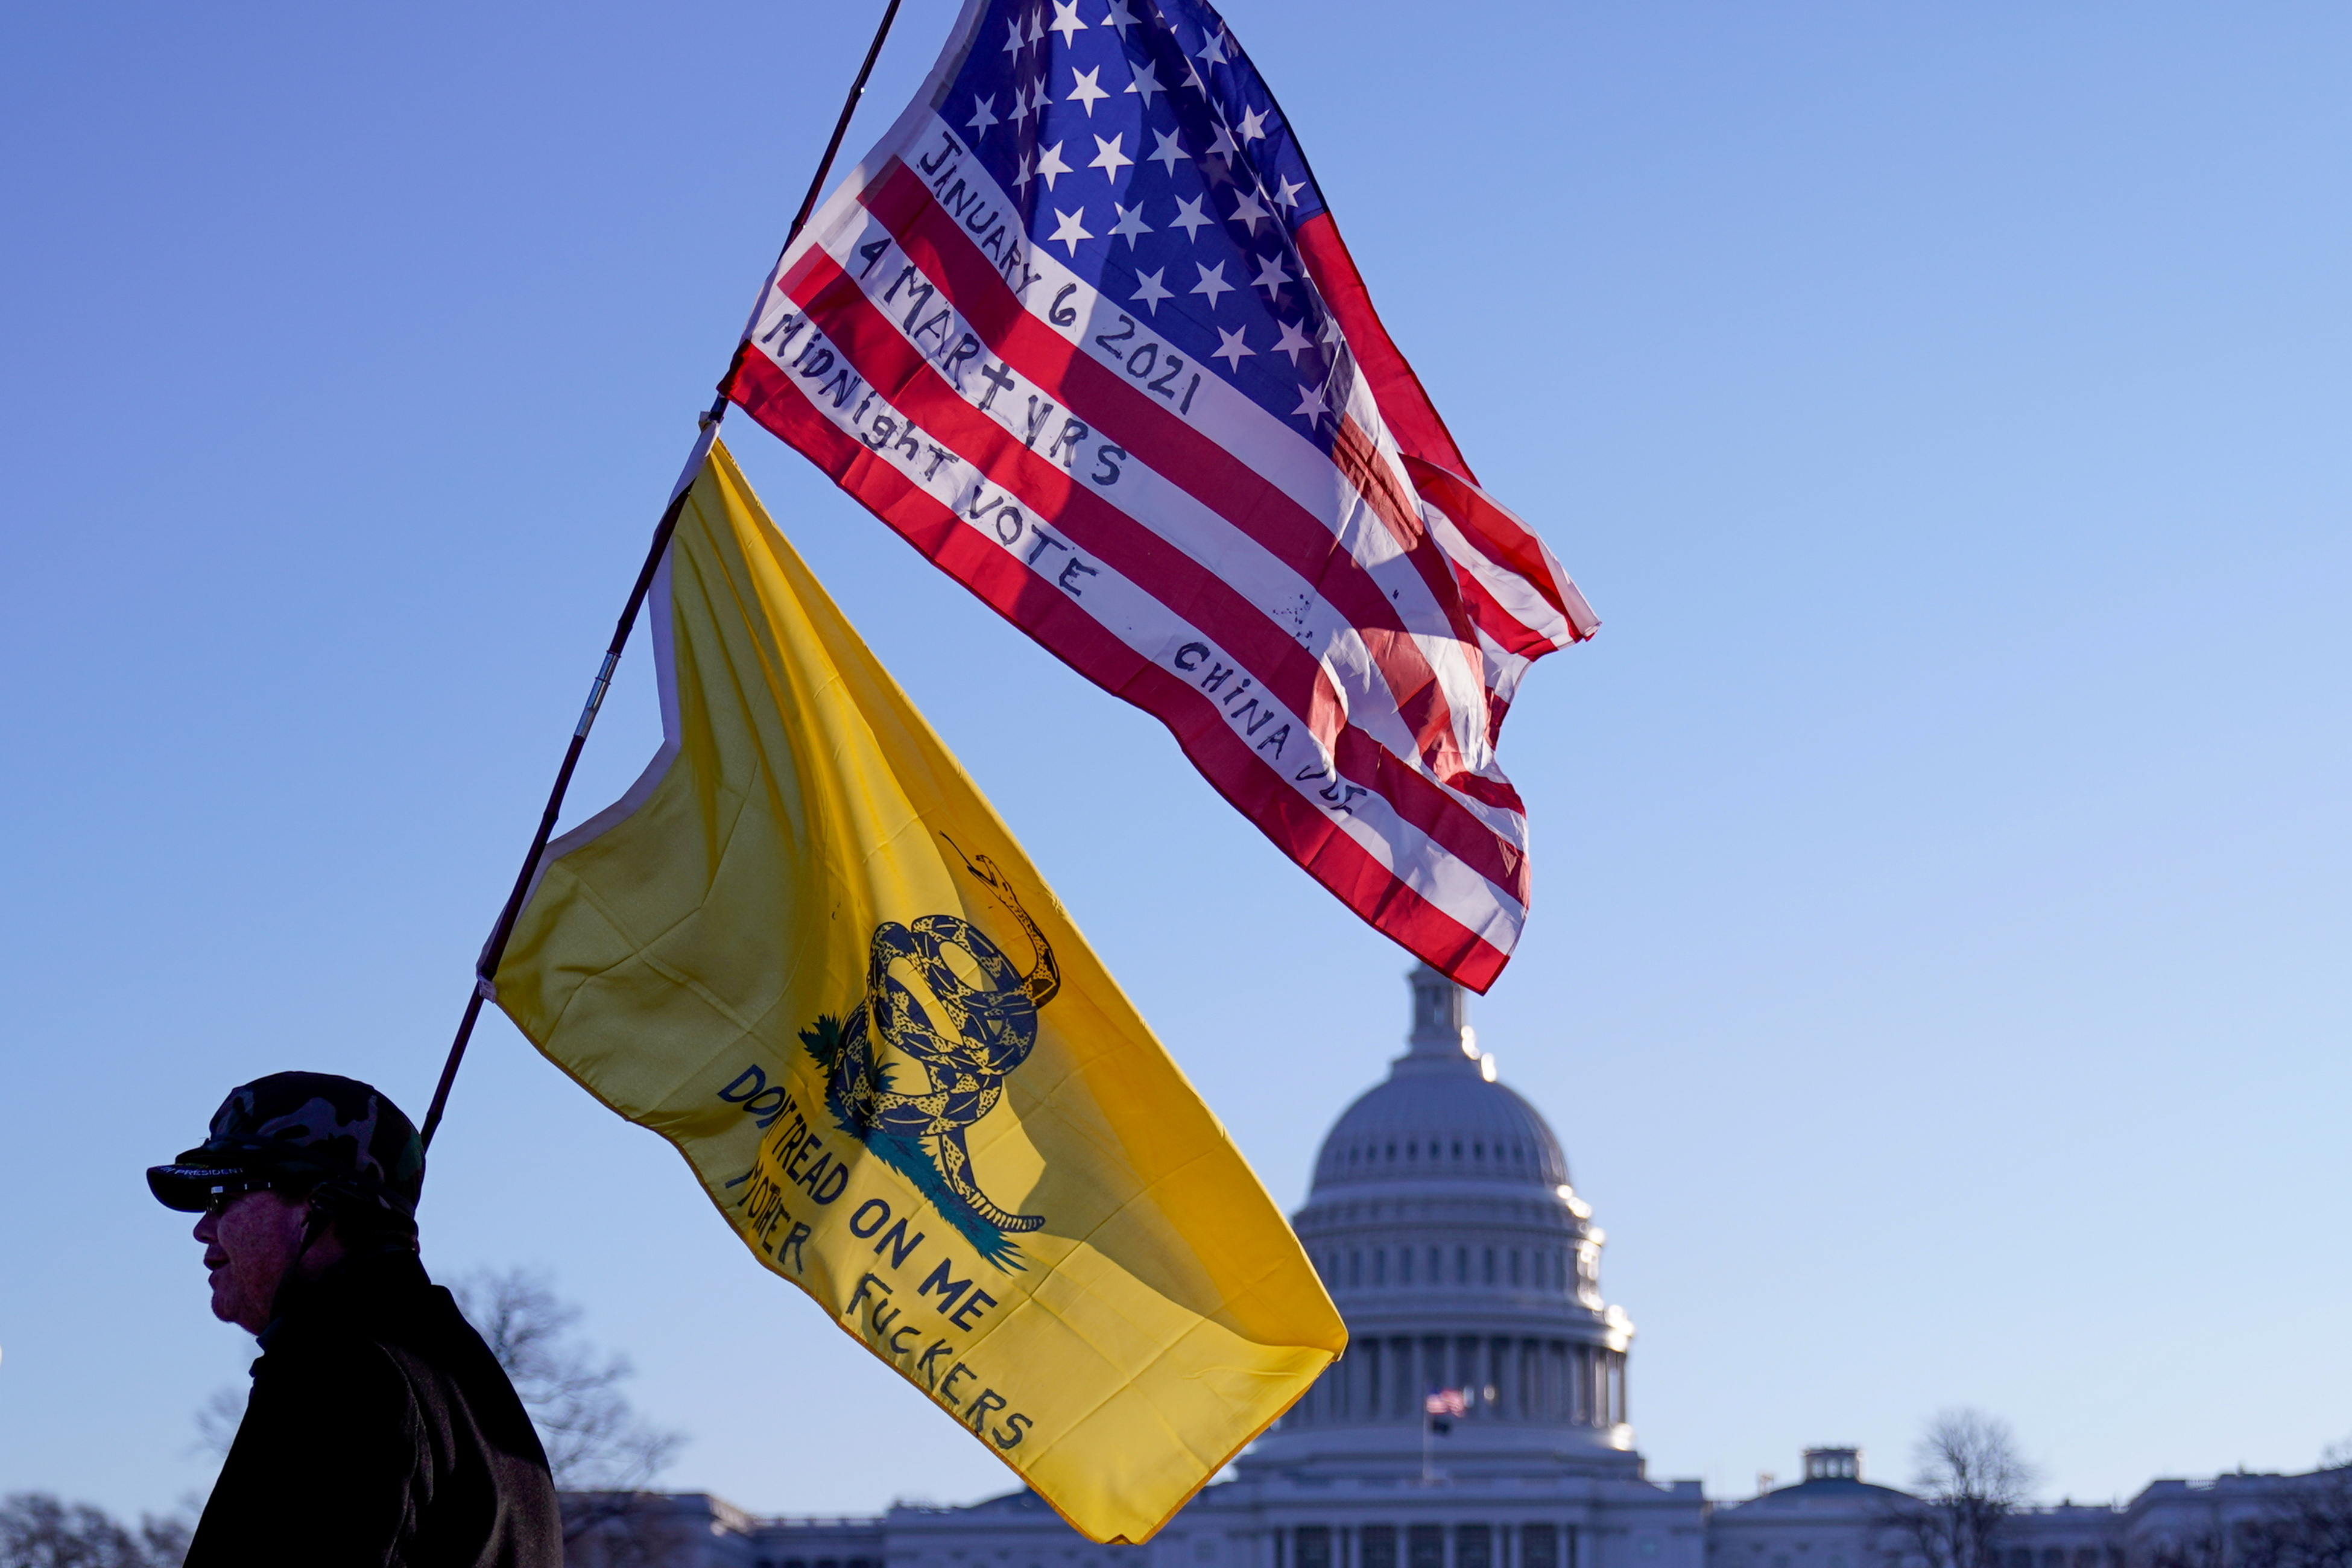 A man walks with a Gadsden and American flags outside the U.S. Capitol, a day after supporters of U.S. President Donald Trump occupied the U.S. Capitol Building in Washington, U.S. January 7, 2021. REUTERS/Erin Scott